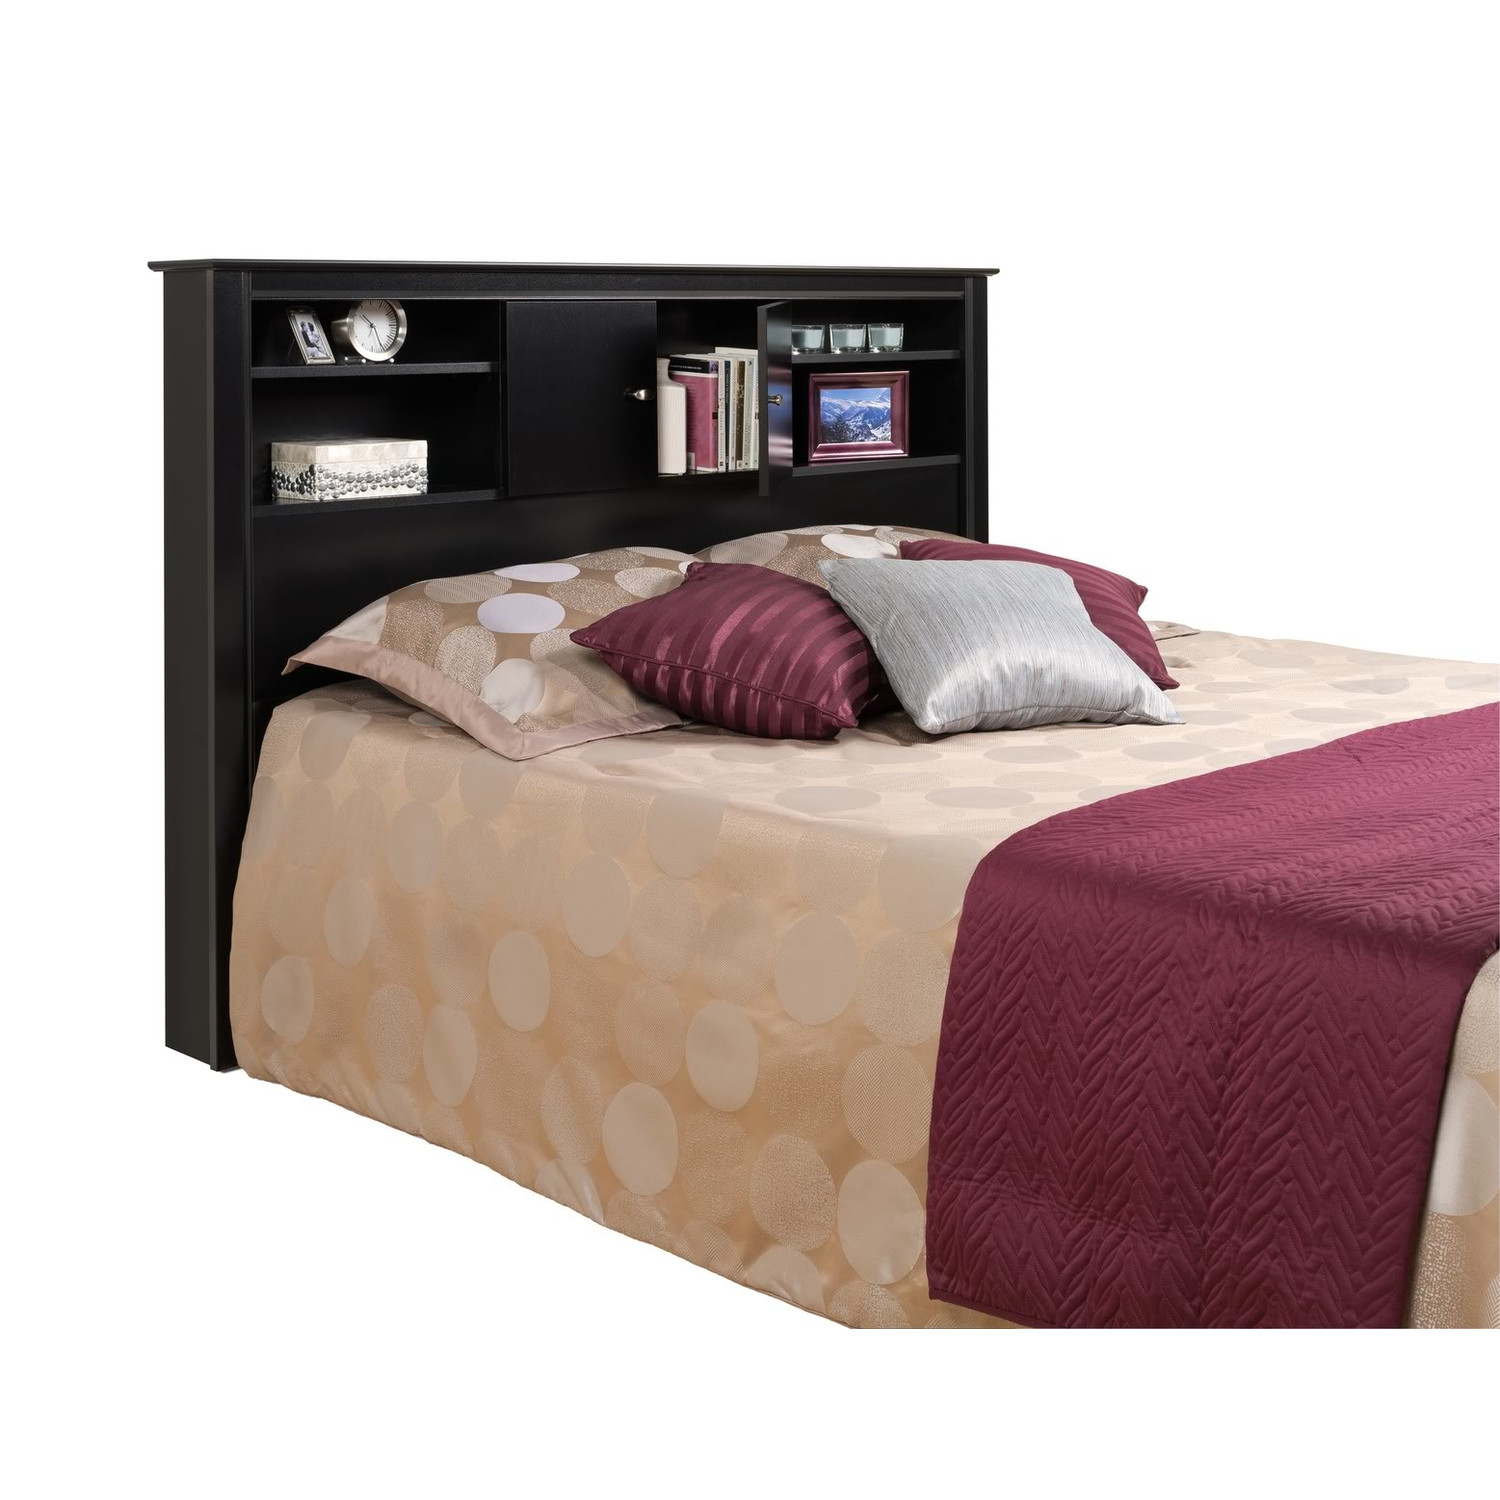 Image of: Bookcase Headboard King   red